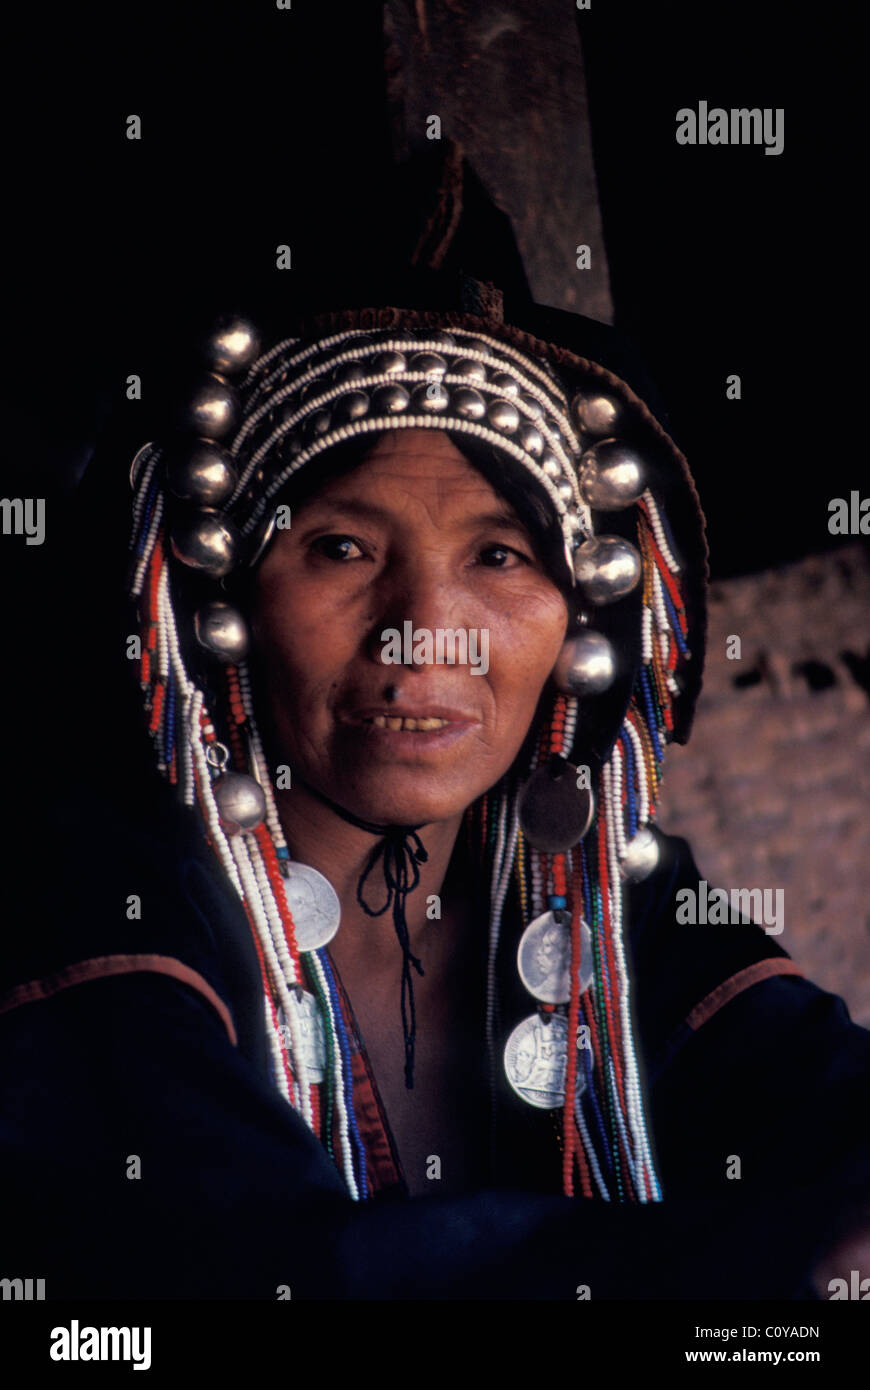 Akha hill tribeswoman in traditional silver headdress Northern Thailand - Stock Image